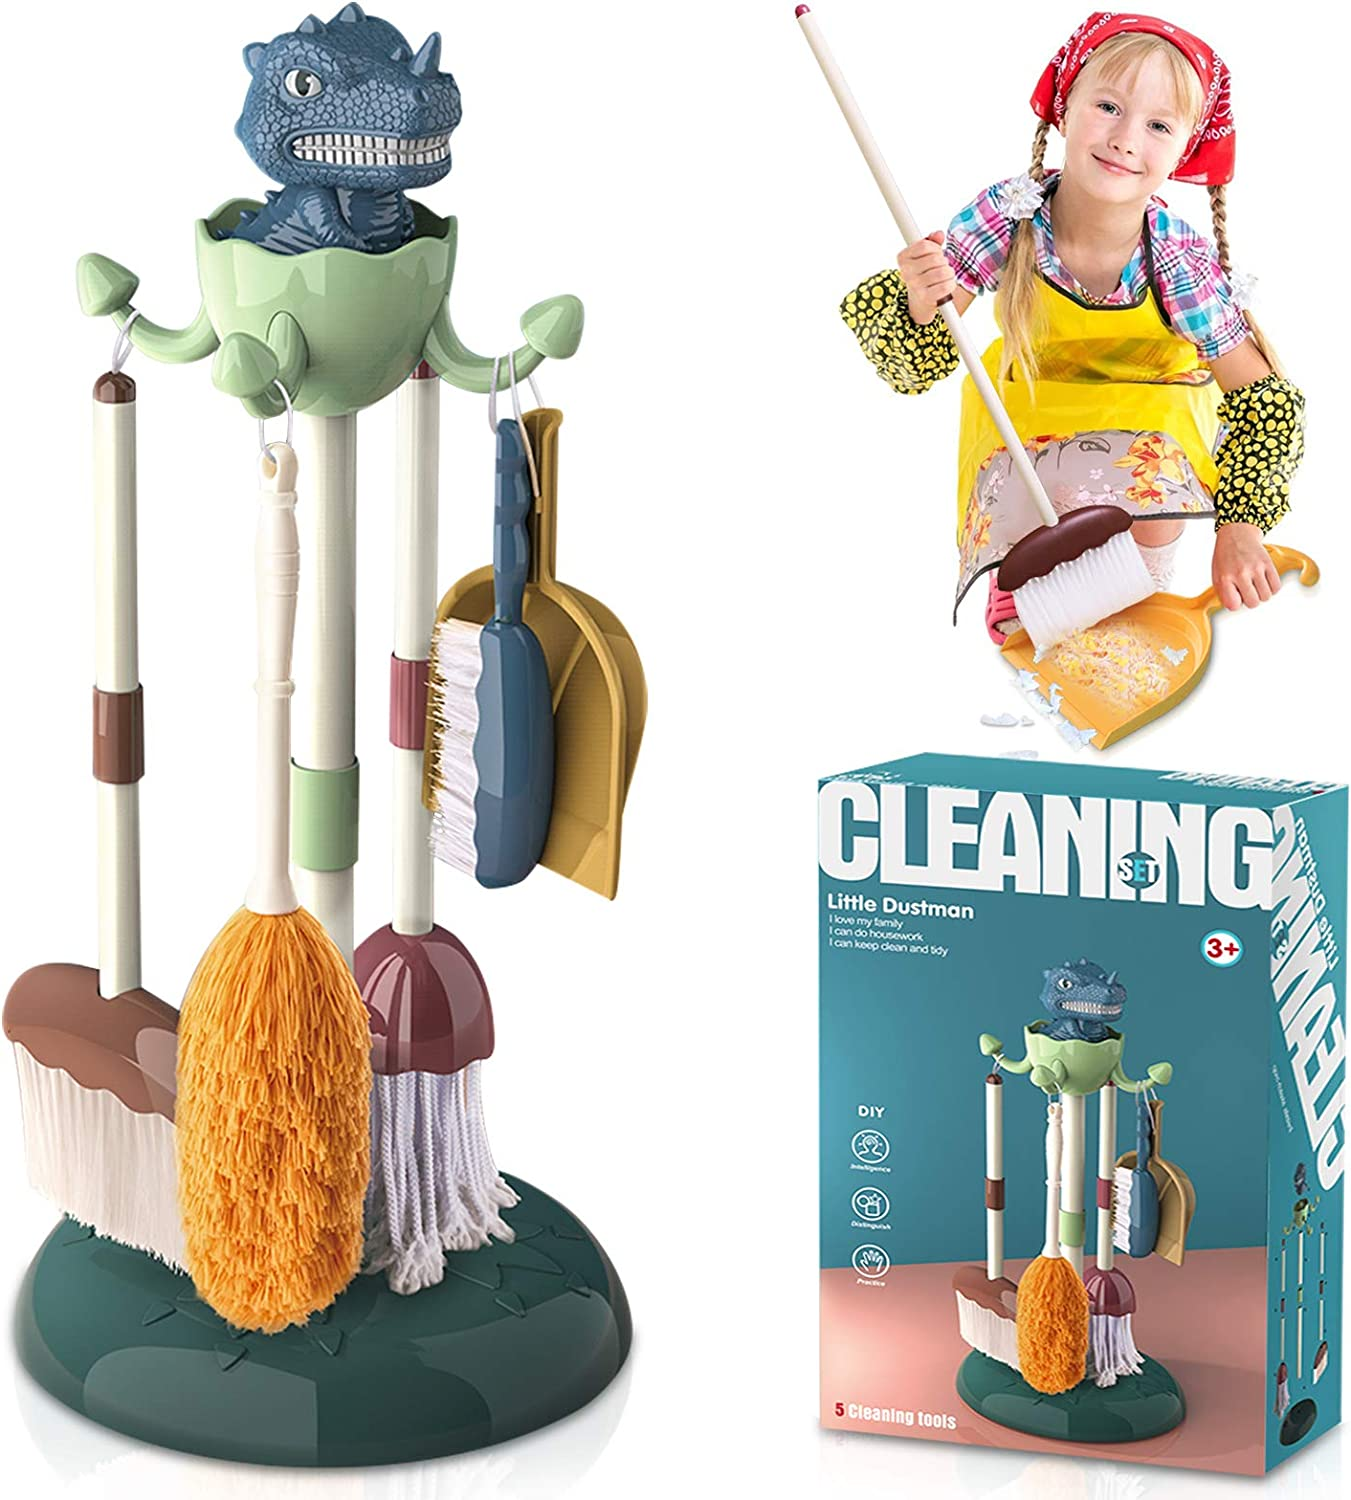 Dinosaur Station Kids Cleaning Set Small Broom and Dustpan Set 6-in-1 Cleaning Tools Pretend Play Activities Housekeeping Toys for Toddler Boys and Girls (Frustration Free Packaging)